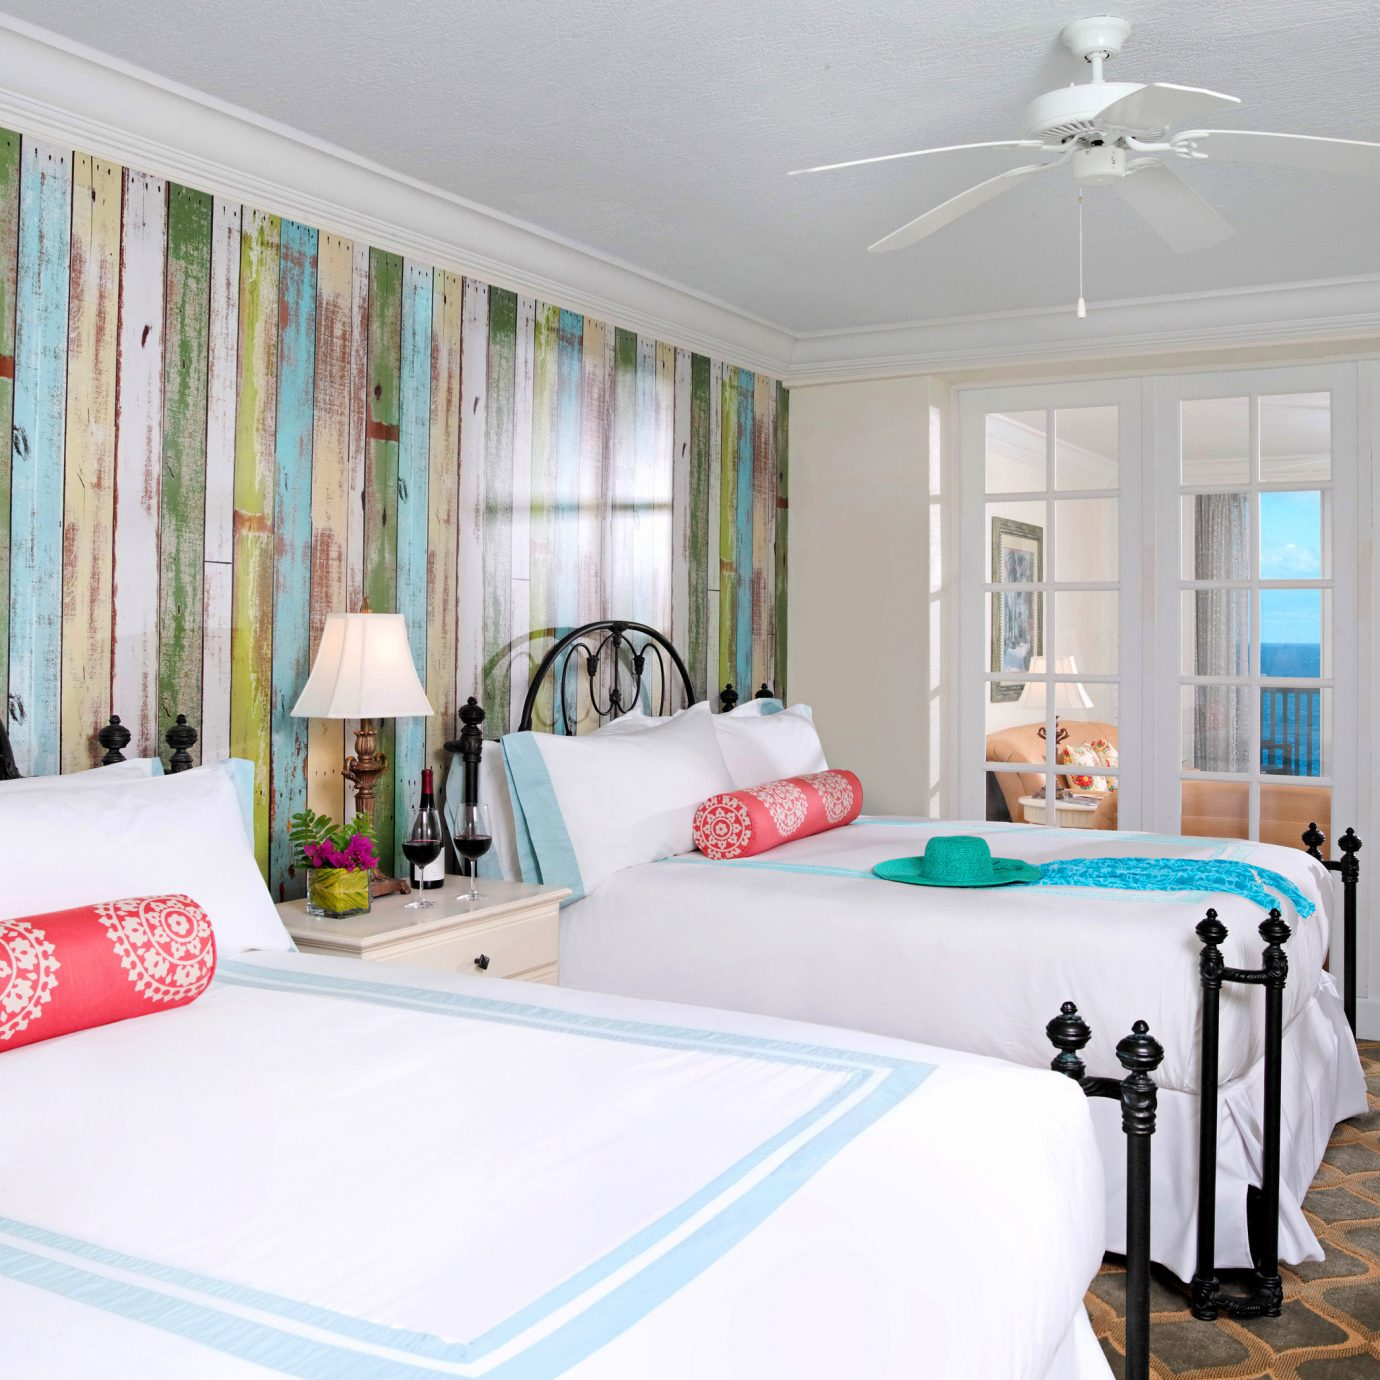 Balcony Bedroom Modern Resort Scenic views Suite Waterfront property home white living room bed sheet cottage